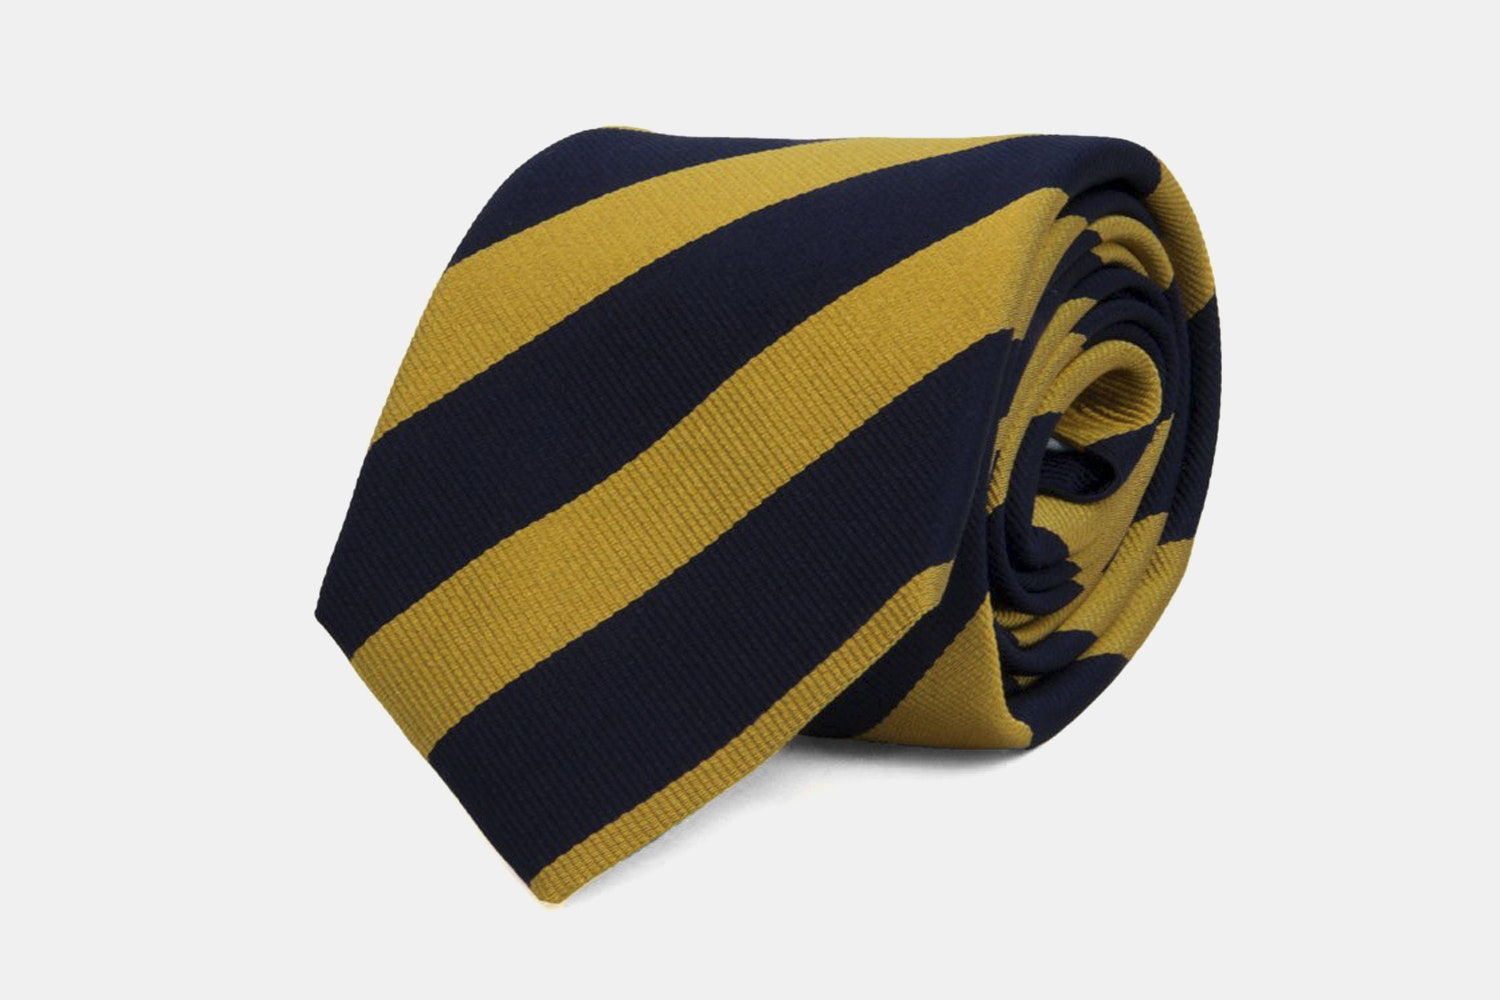 Club-striped - Navy/Yellow